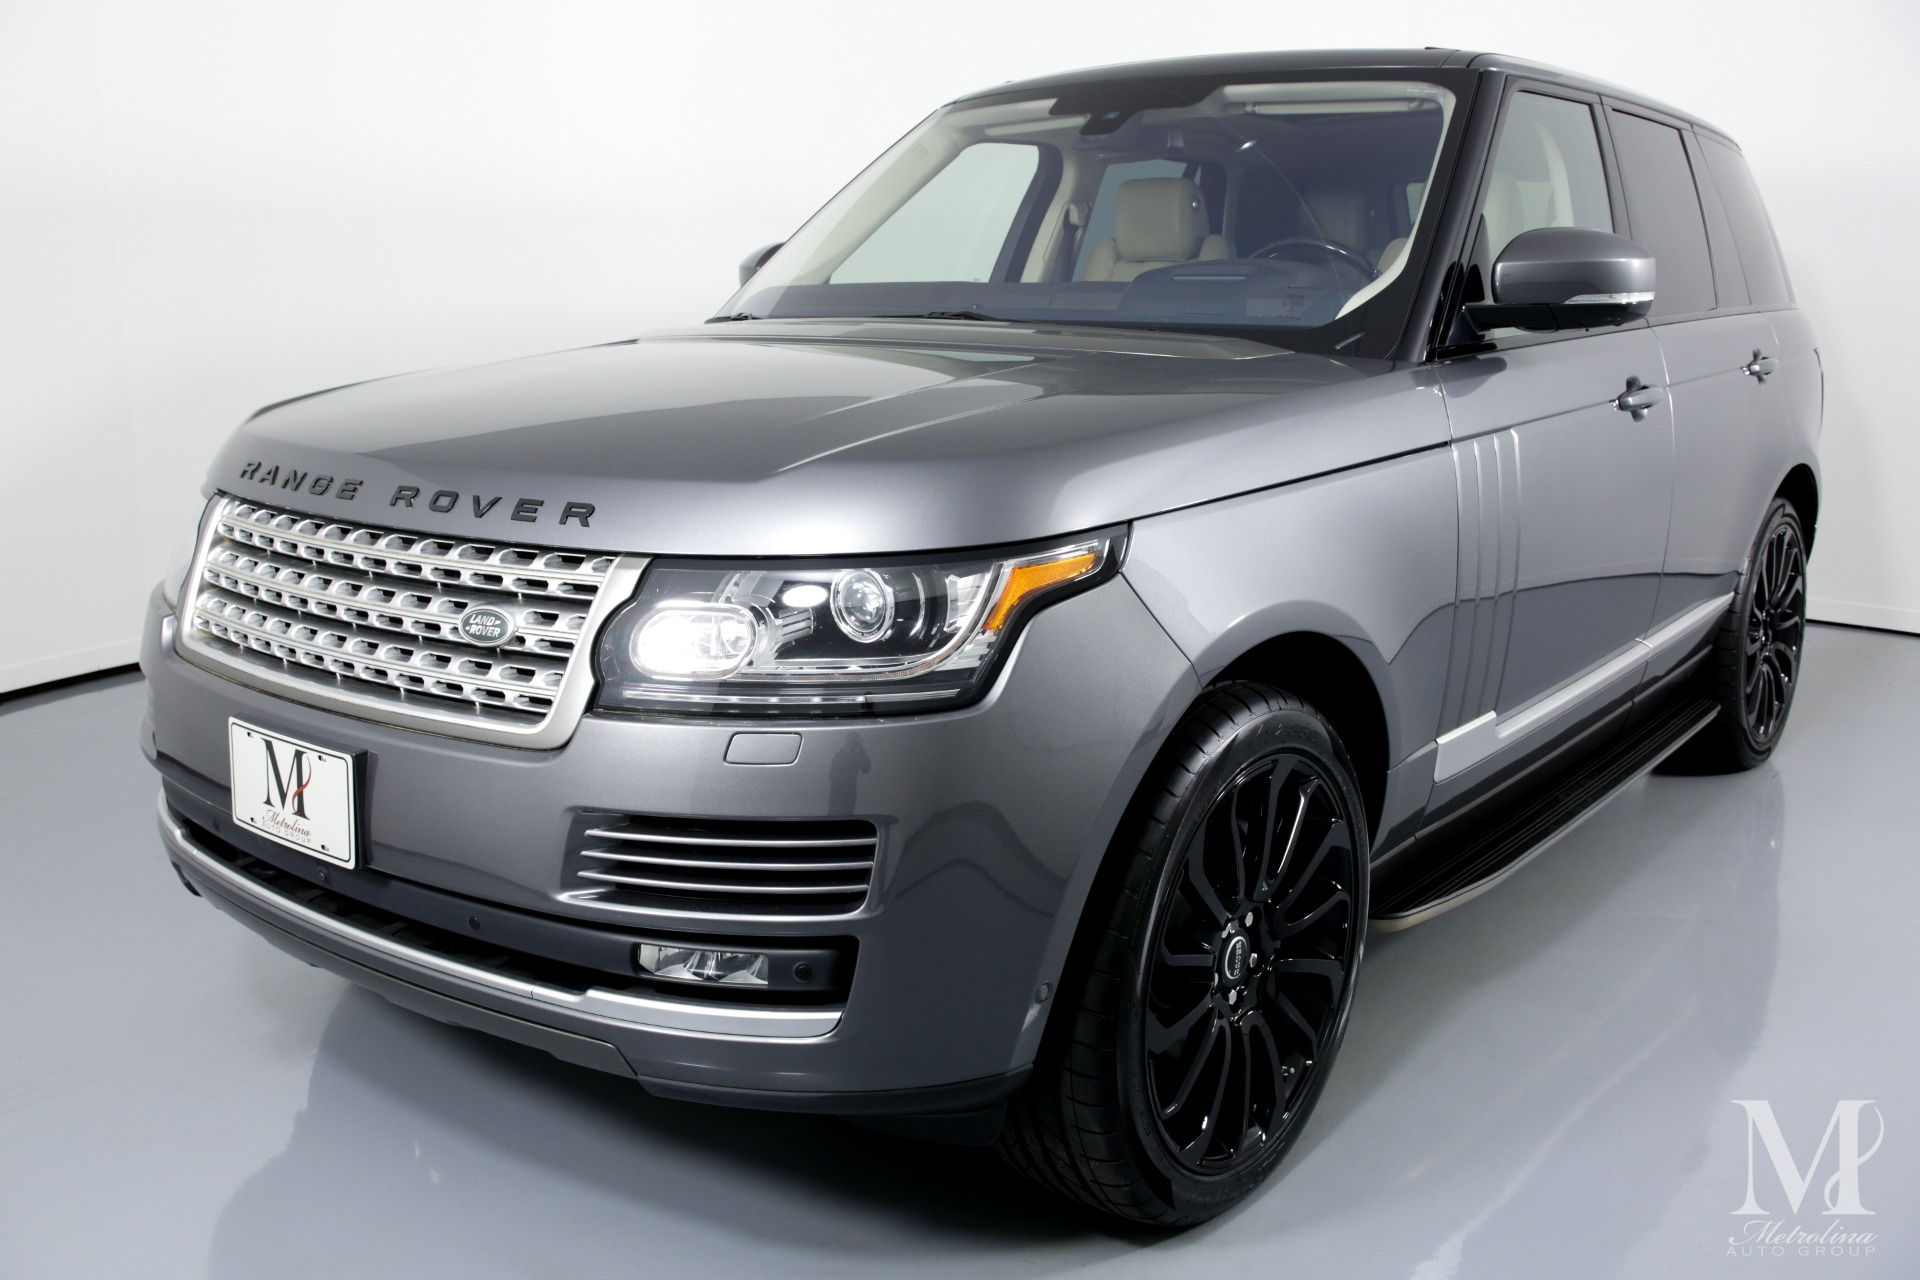 Used 2016 Land Rover Range Rover HSE AWD 4dr SUV for sale Sold at Metrolina Auto Group in Charlotte NC 28217 - 4